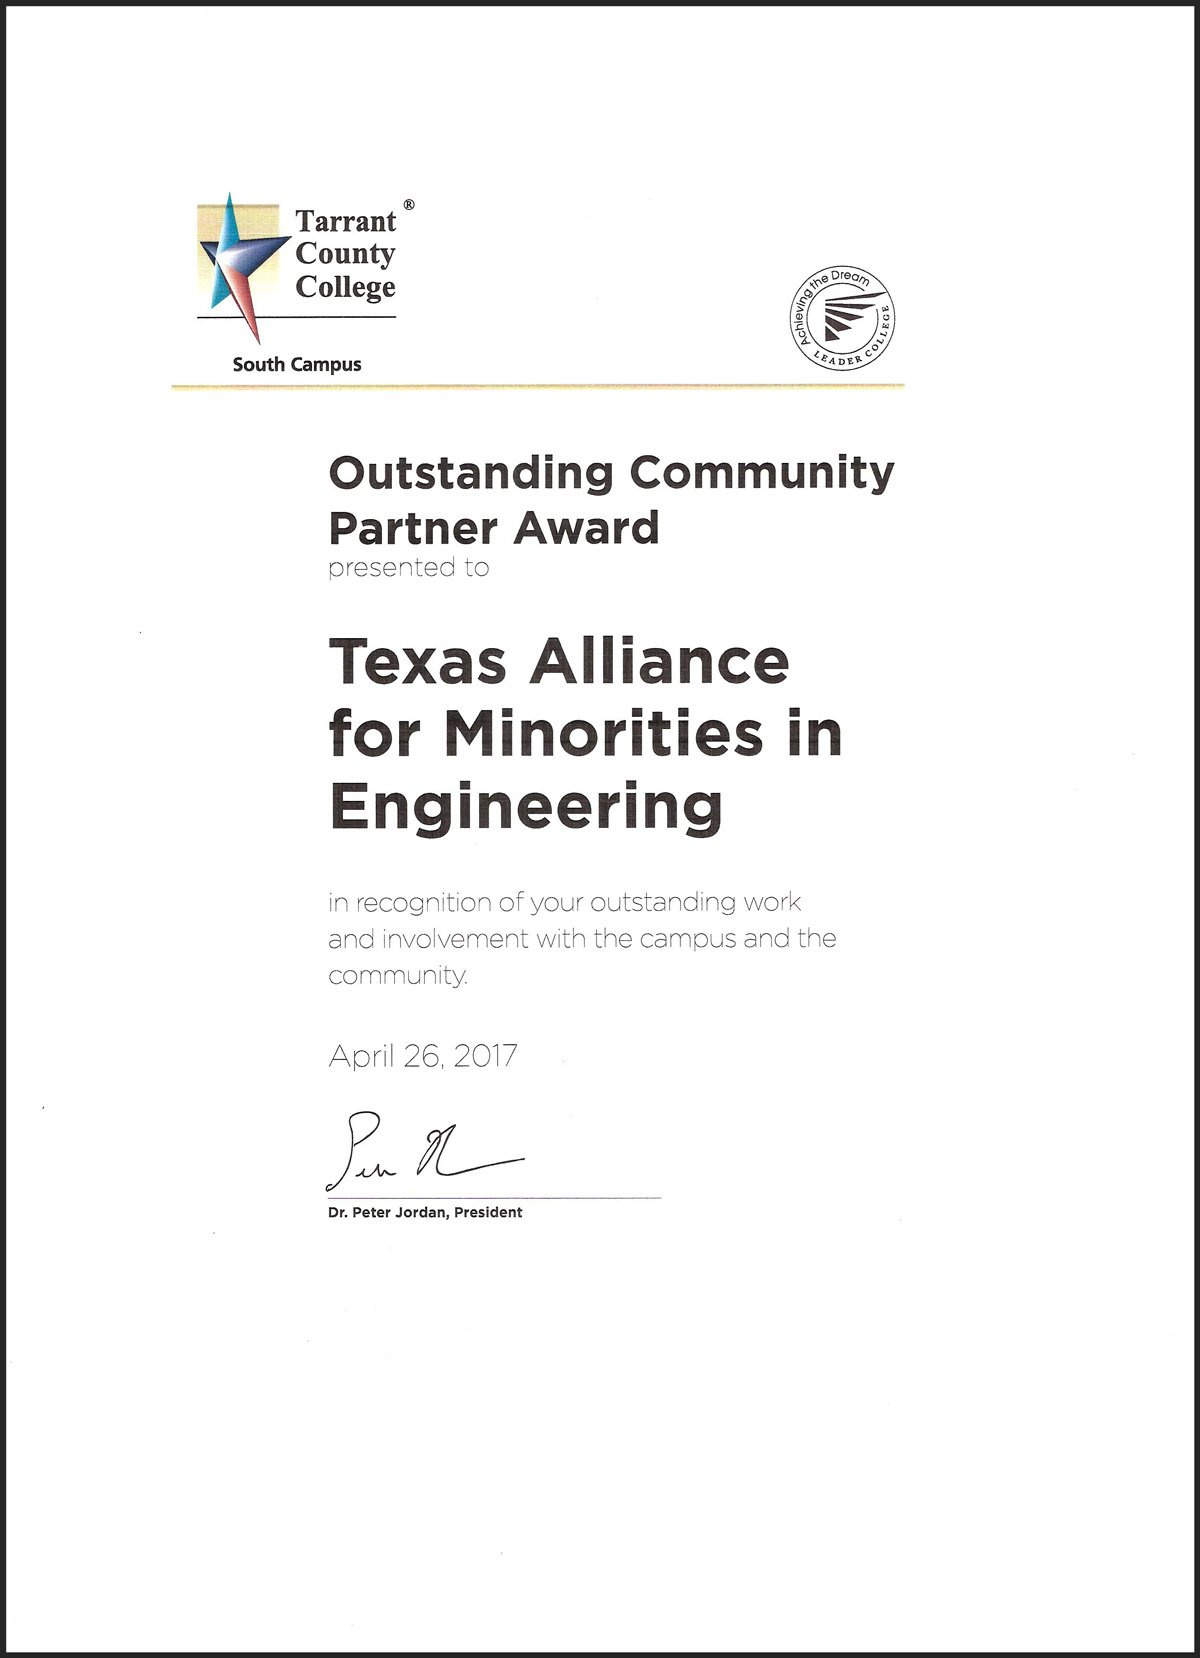 tcc outstanding community partner tame 04 25 17 v2